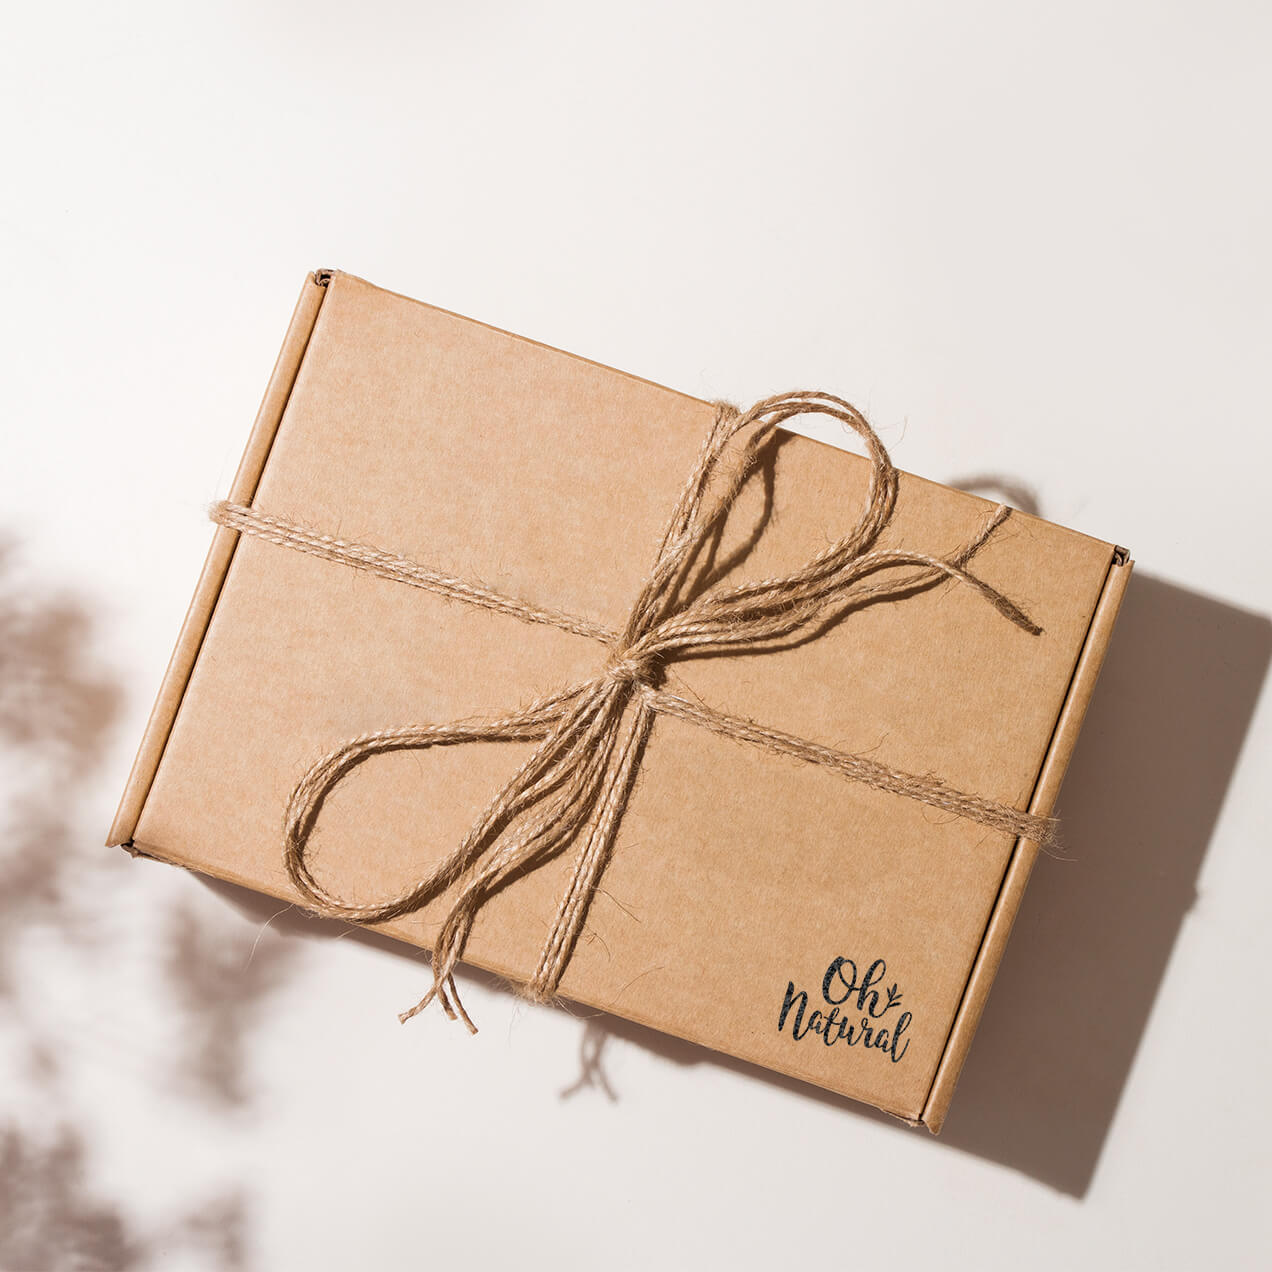 MAKE IT A GIFT! ADD A GIFT BOX TO YOUR ORDER - Oh Natural